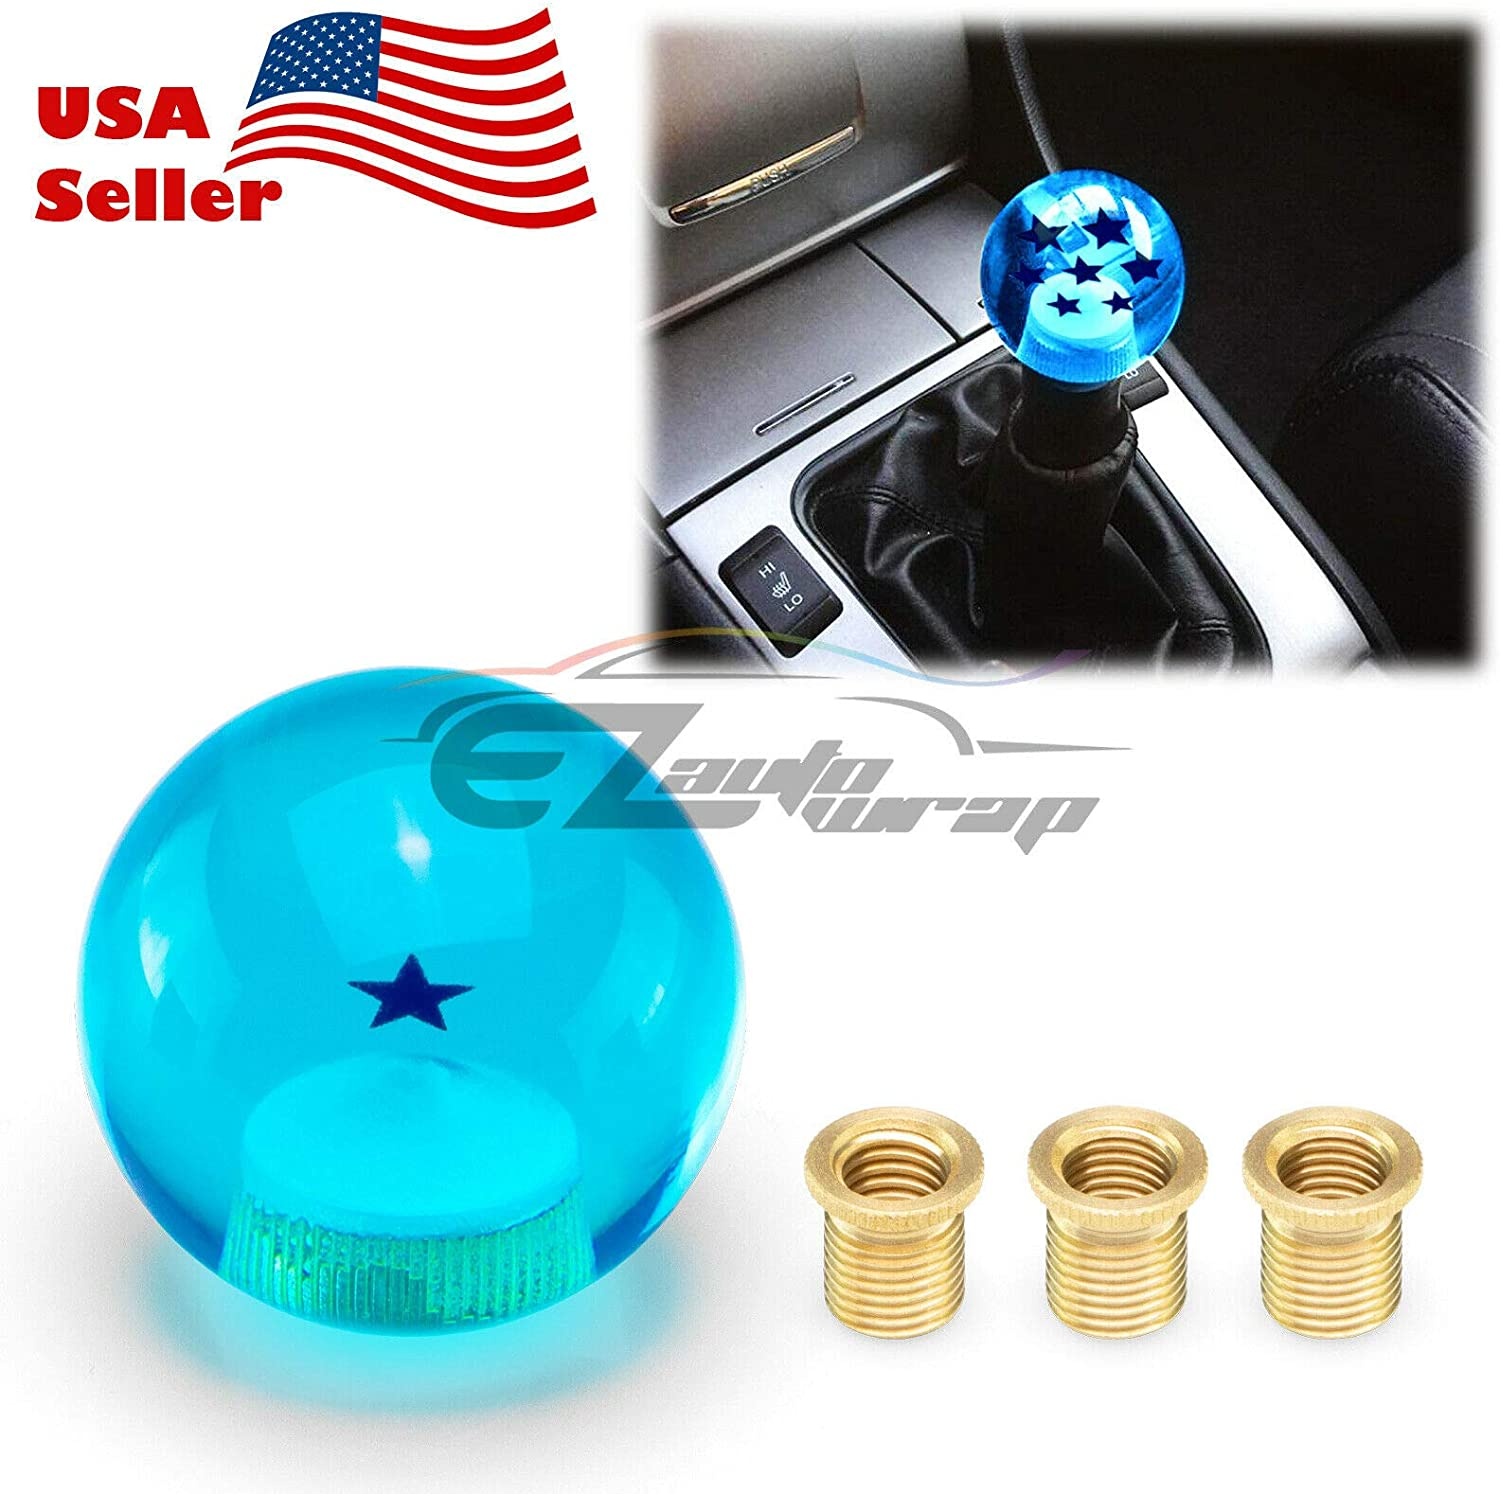 EZAUTOWRAP Universal Orange Dragon Ball Z 4 Star 54mm Shift Knob with Adapters Will Fit Most Cars